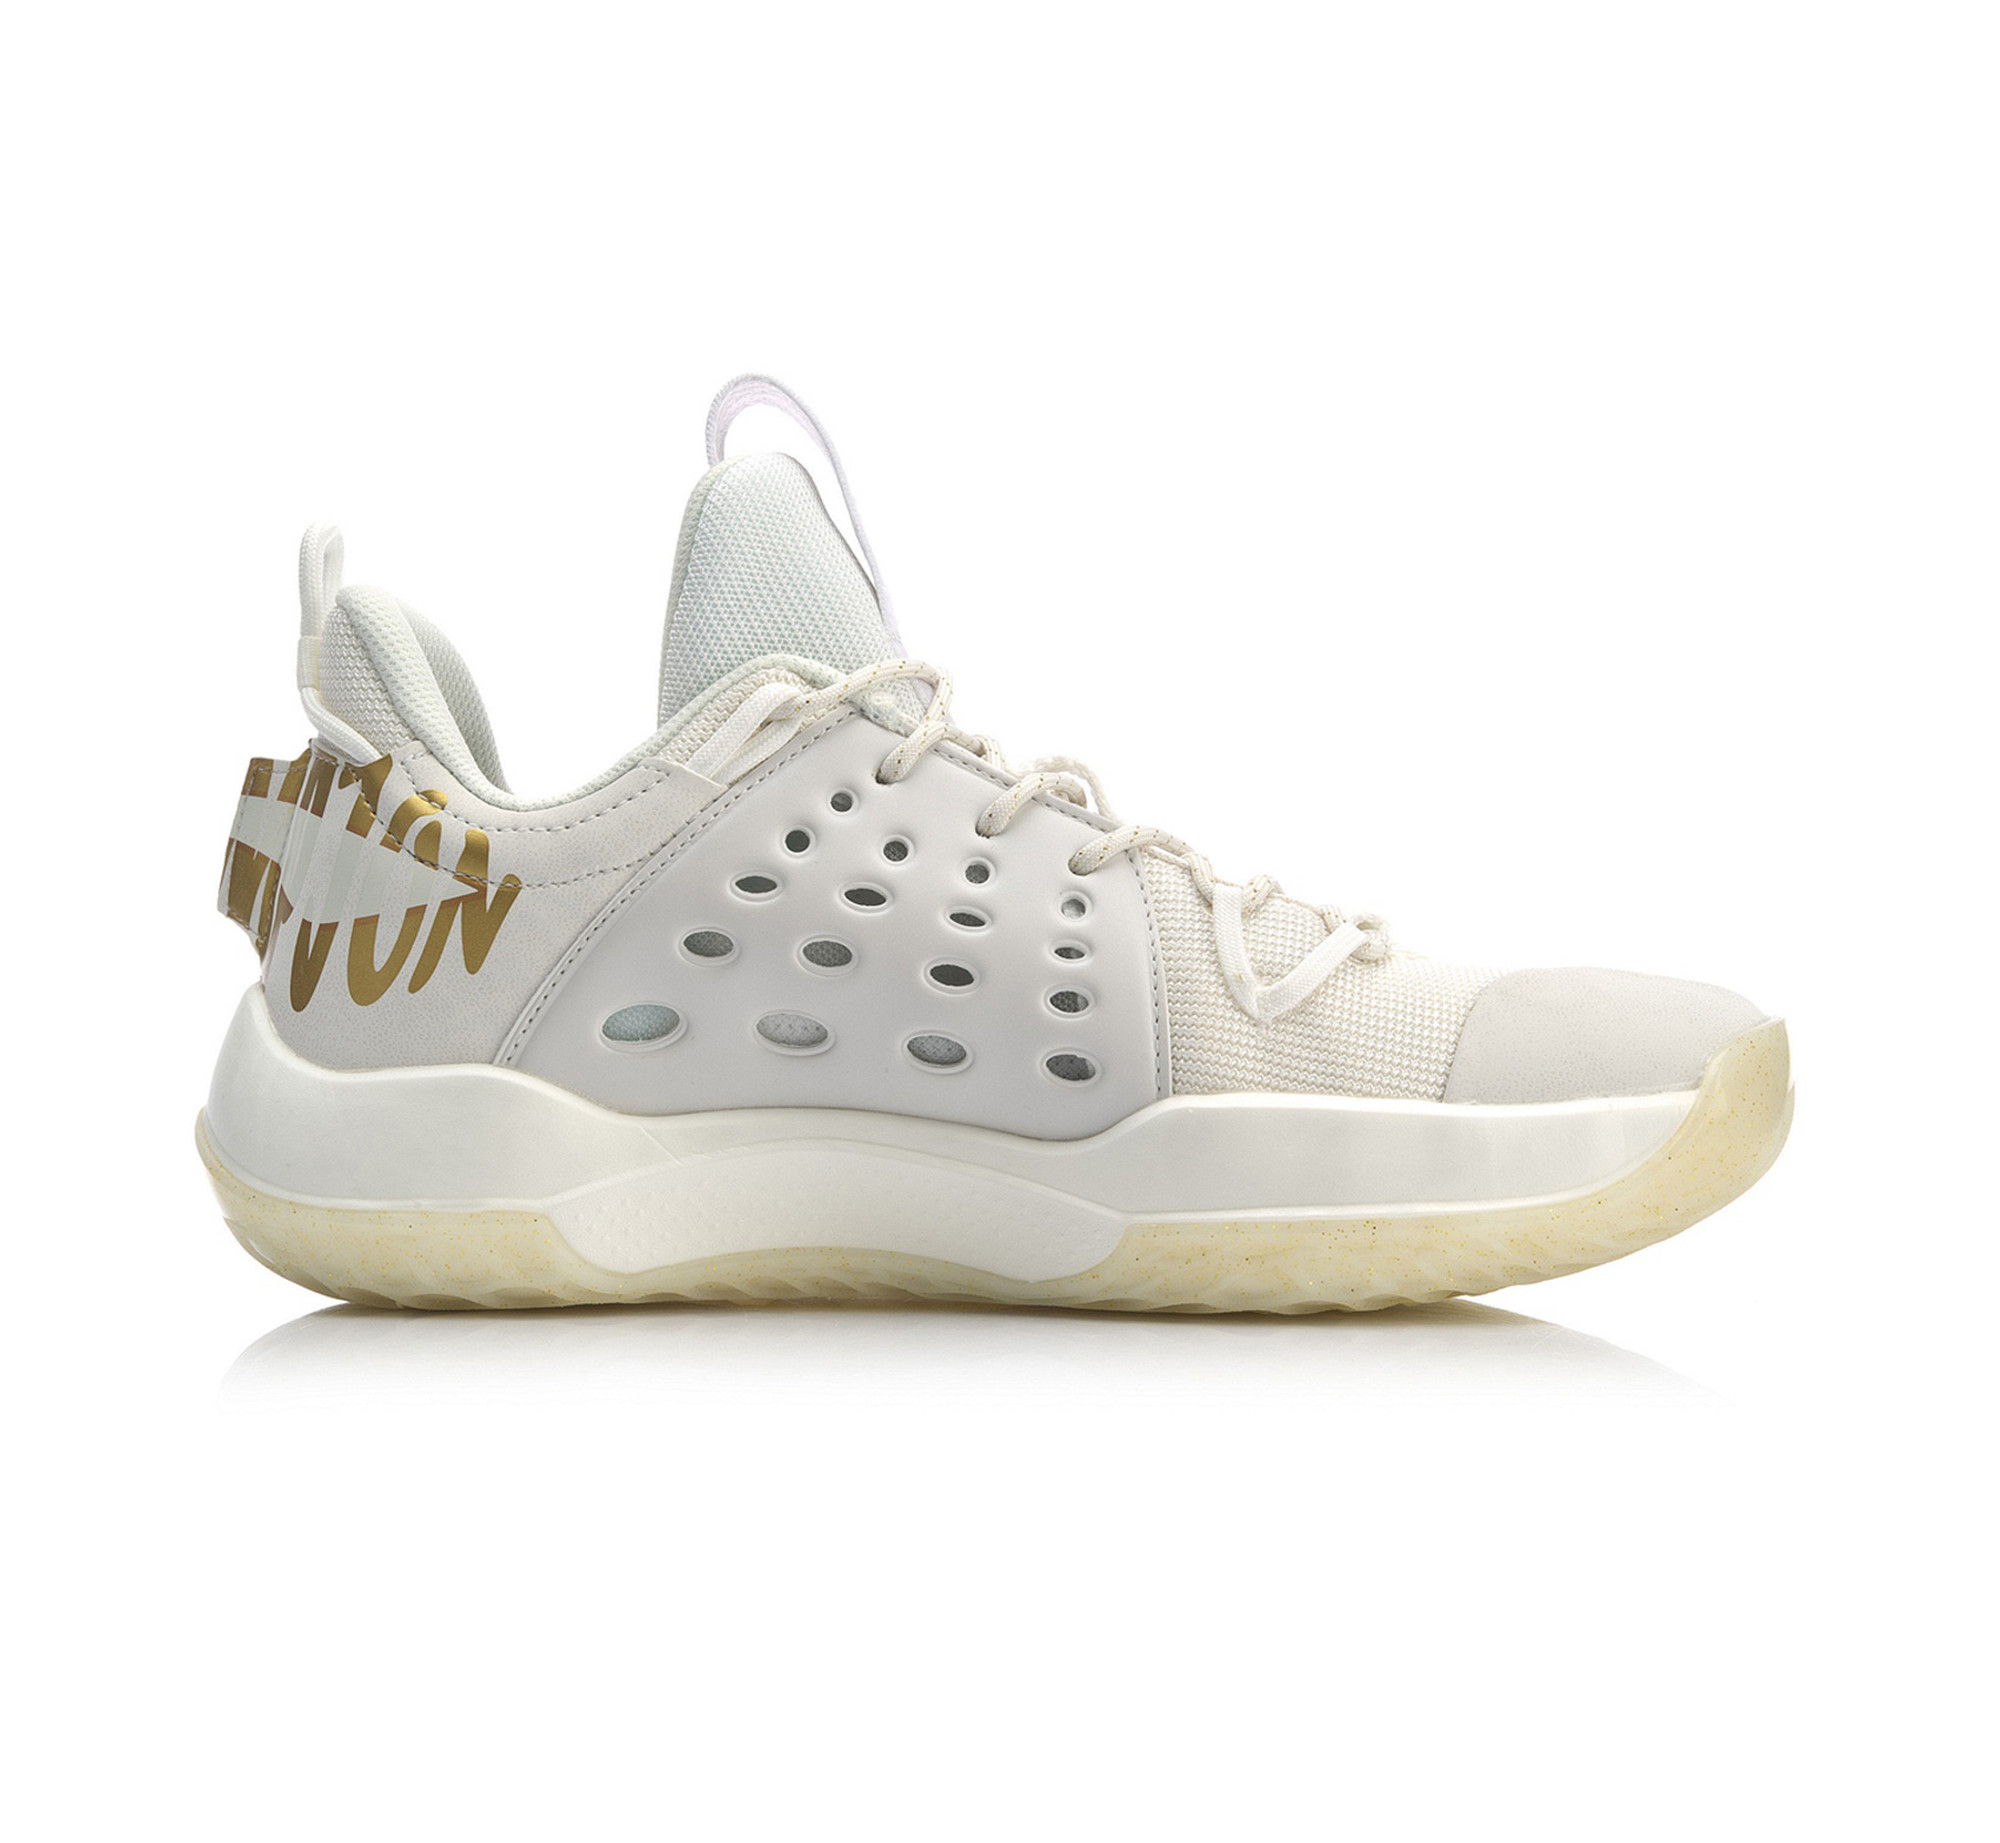 5670163d64676d Li-Ning Sonic VII Low Basketball Shoes | Shop online now at Sunlight ...